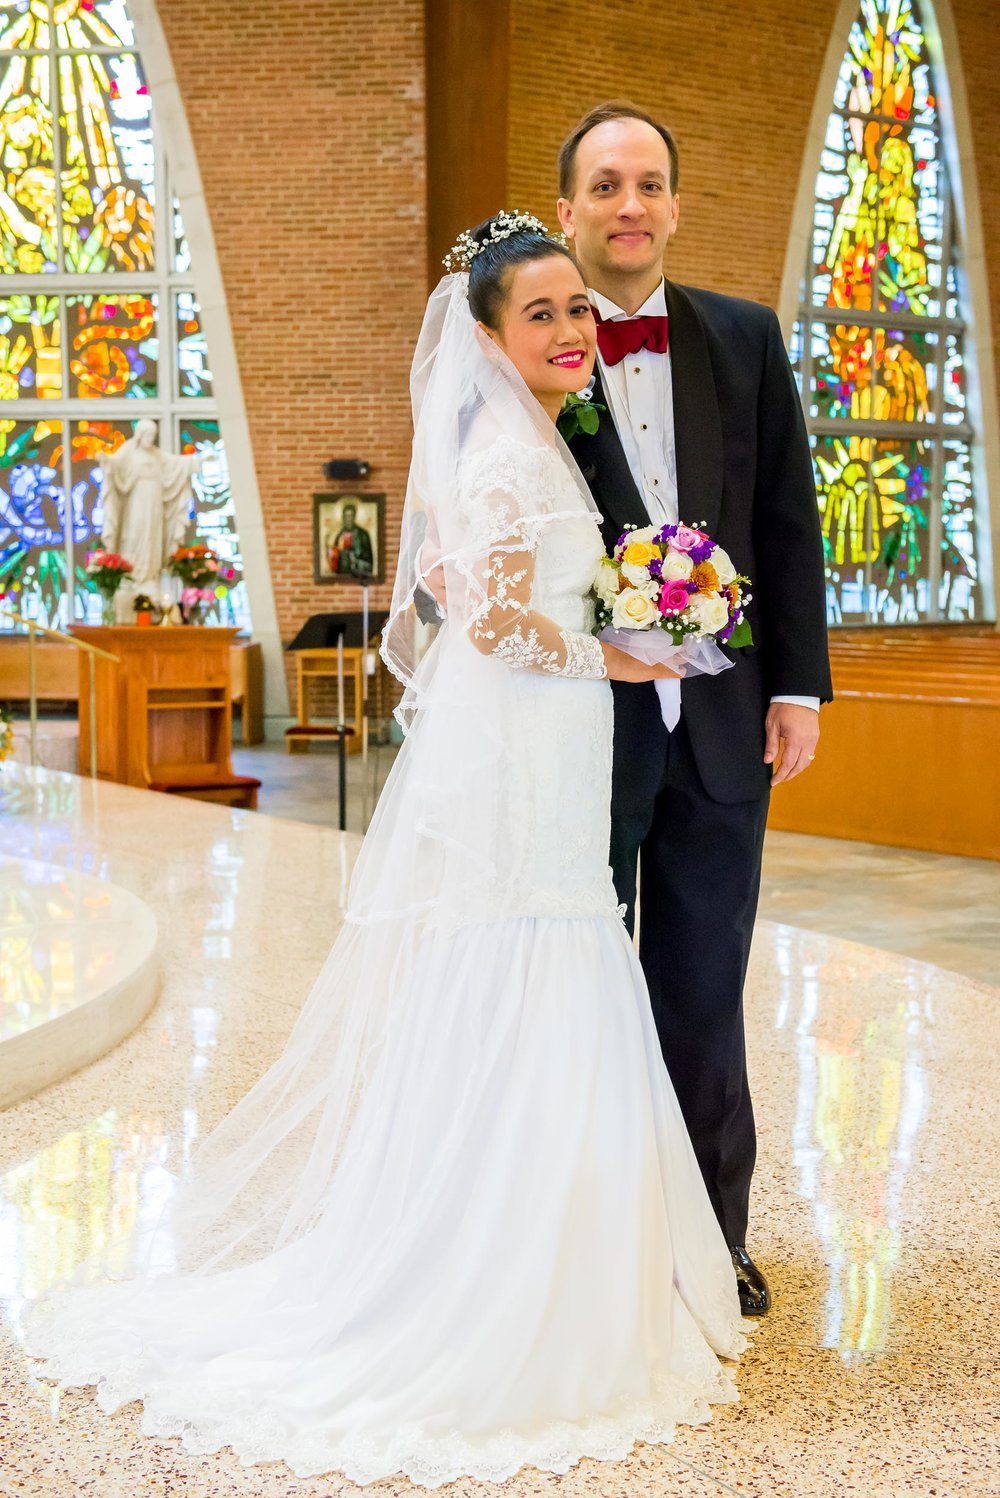 Dennis Soans Photography Weddings Fairfax VA